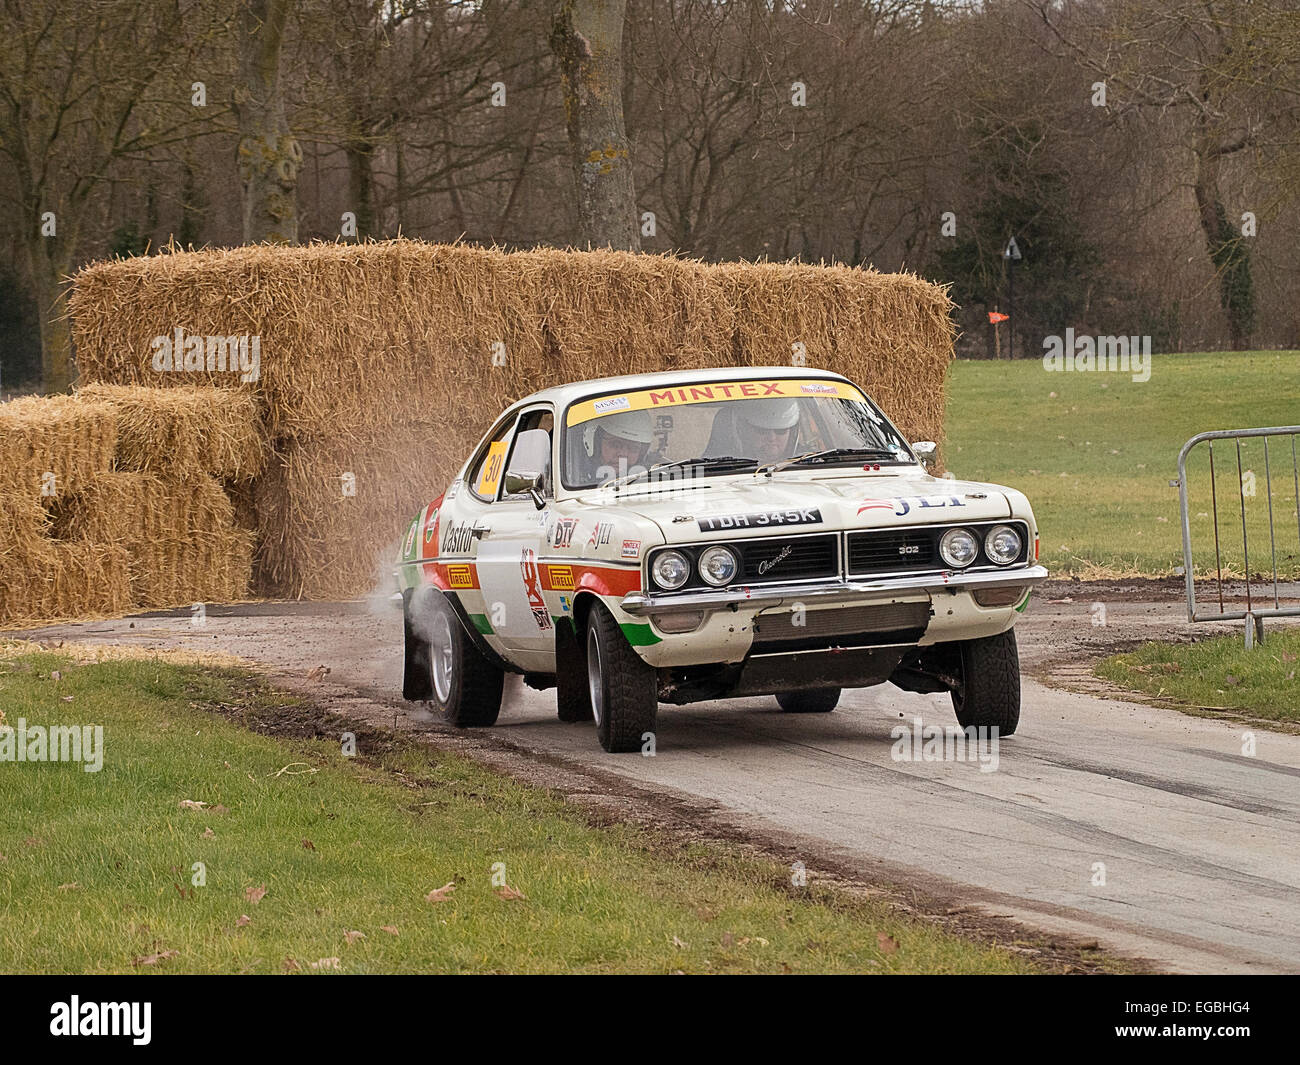 Warwickshire, UK. 21st Feb, 2015. Vauxhall Firenza Rally car on Special stage at Race Retro event 21/02/2015 Credit: - Stock Image